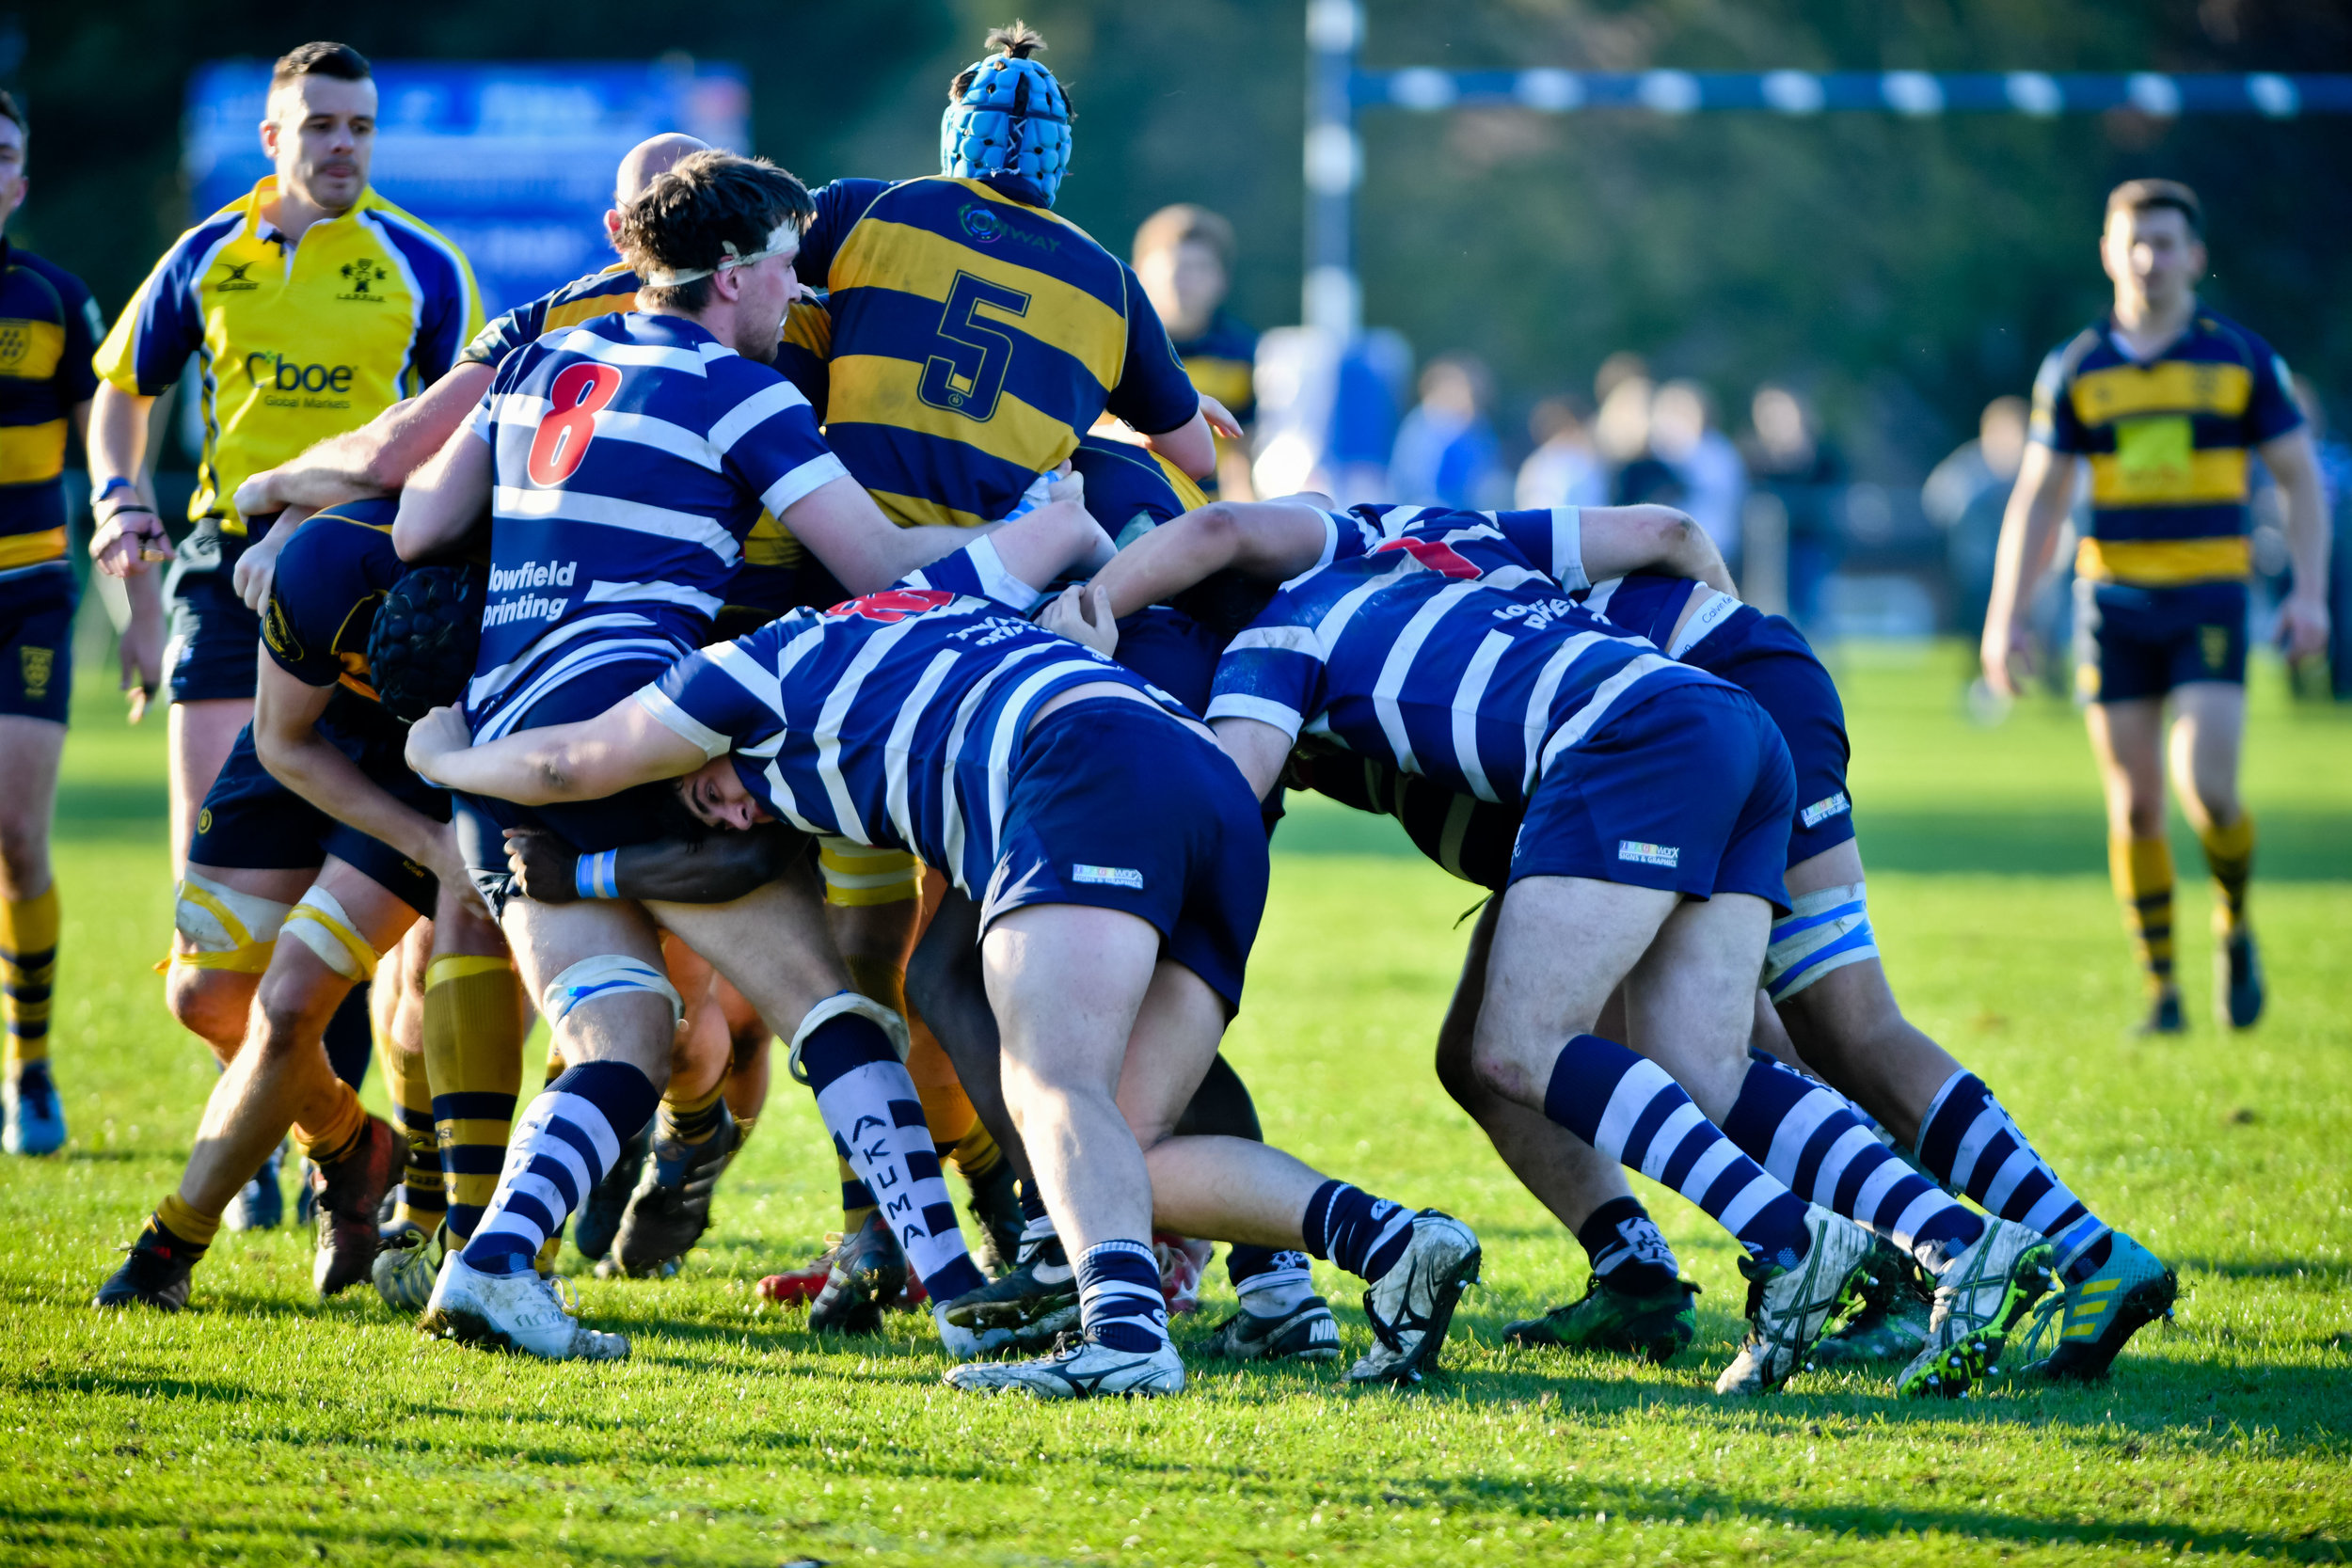 Oaks 1st XV have had a good start to the season, including a win away at local rivals Westcombe Park RFC. Photo Credit: David Purday